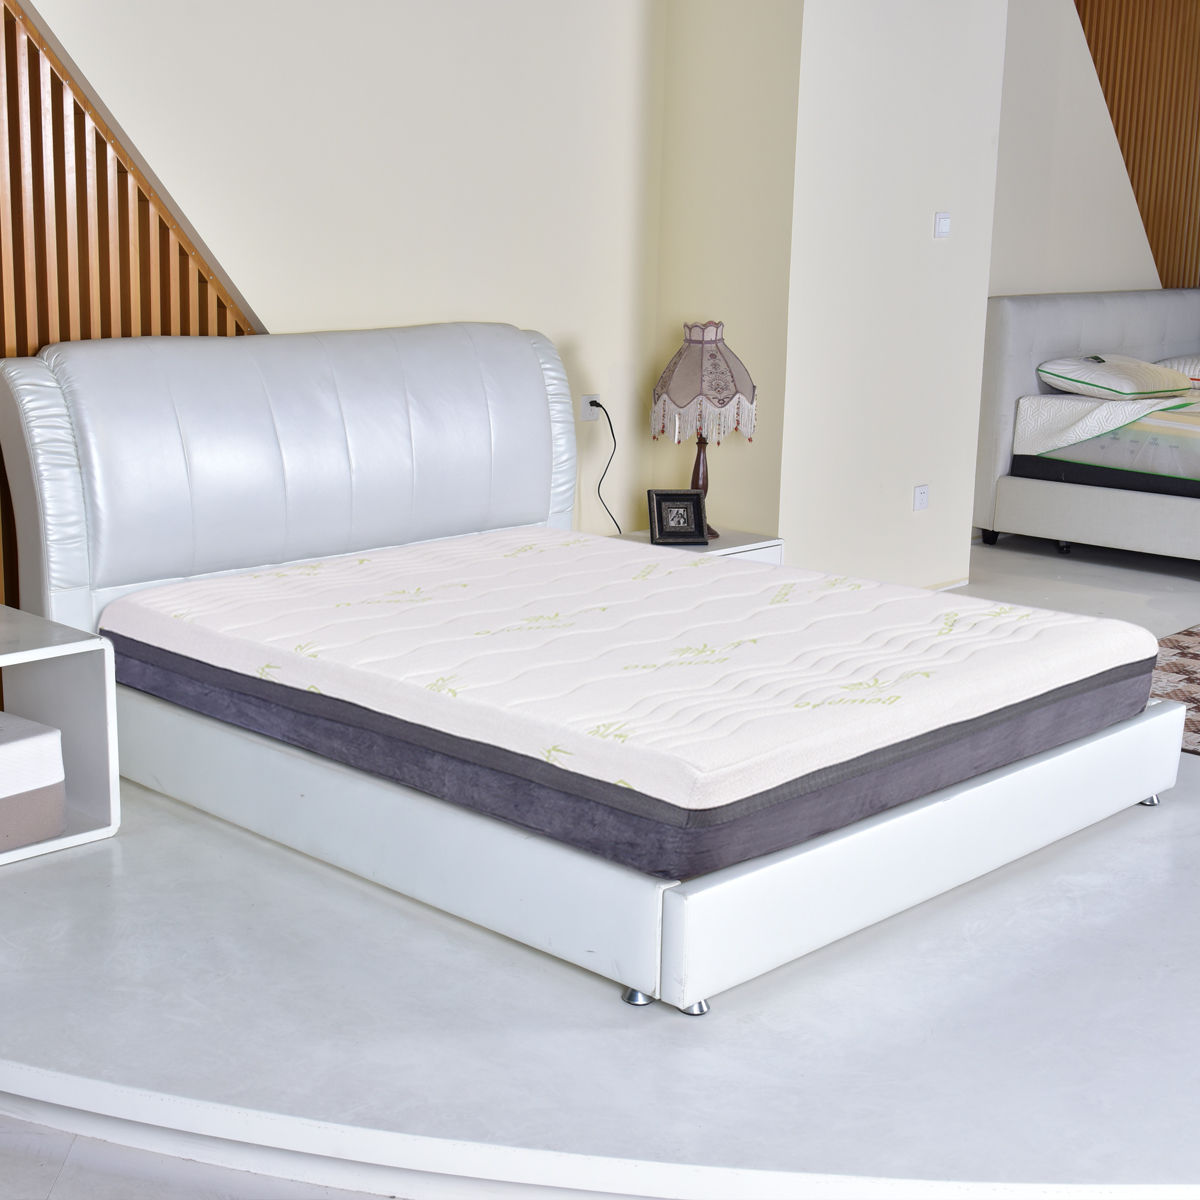 hot sale online b95e8 40ce0 US $219.99 |Giantex Queen Size Memory Foam Zipped Washable Foam Mattress  Healthy Bamboo Cover Mattress Pad Bed Topper HT0968Q-in Mattresses from ...